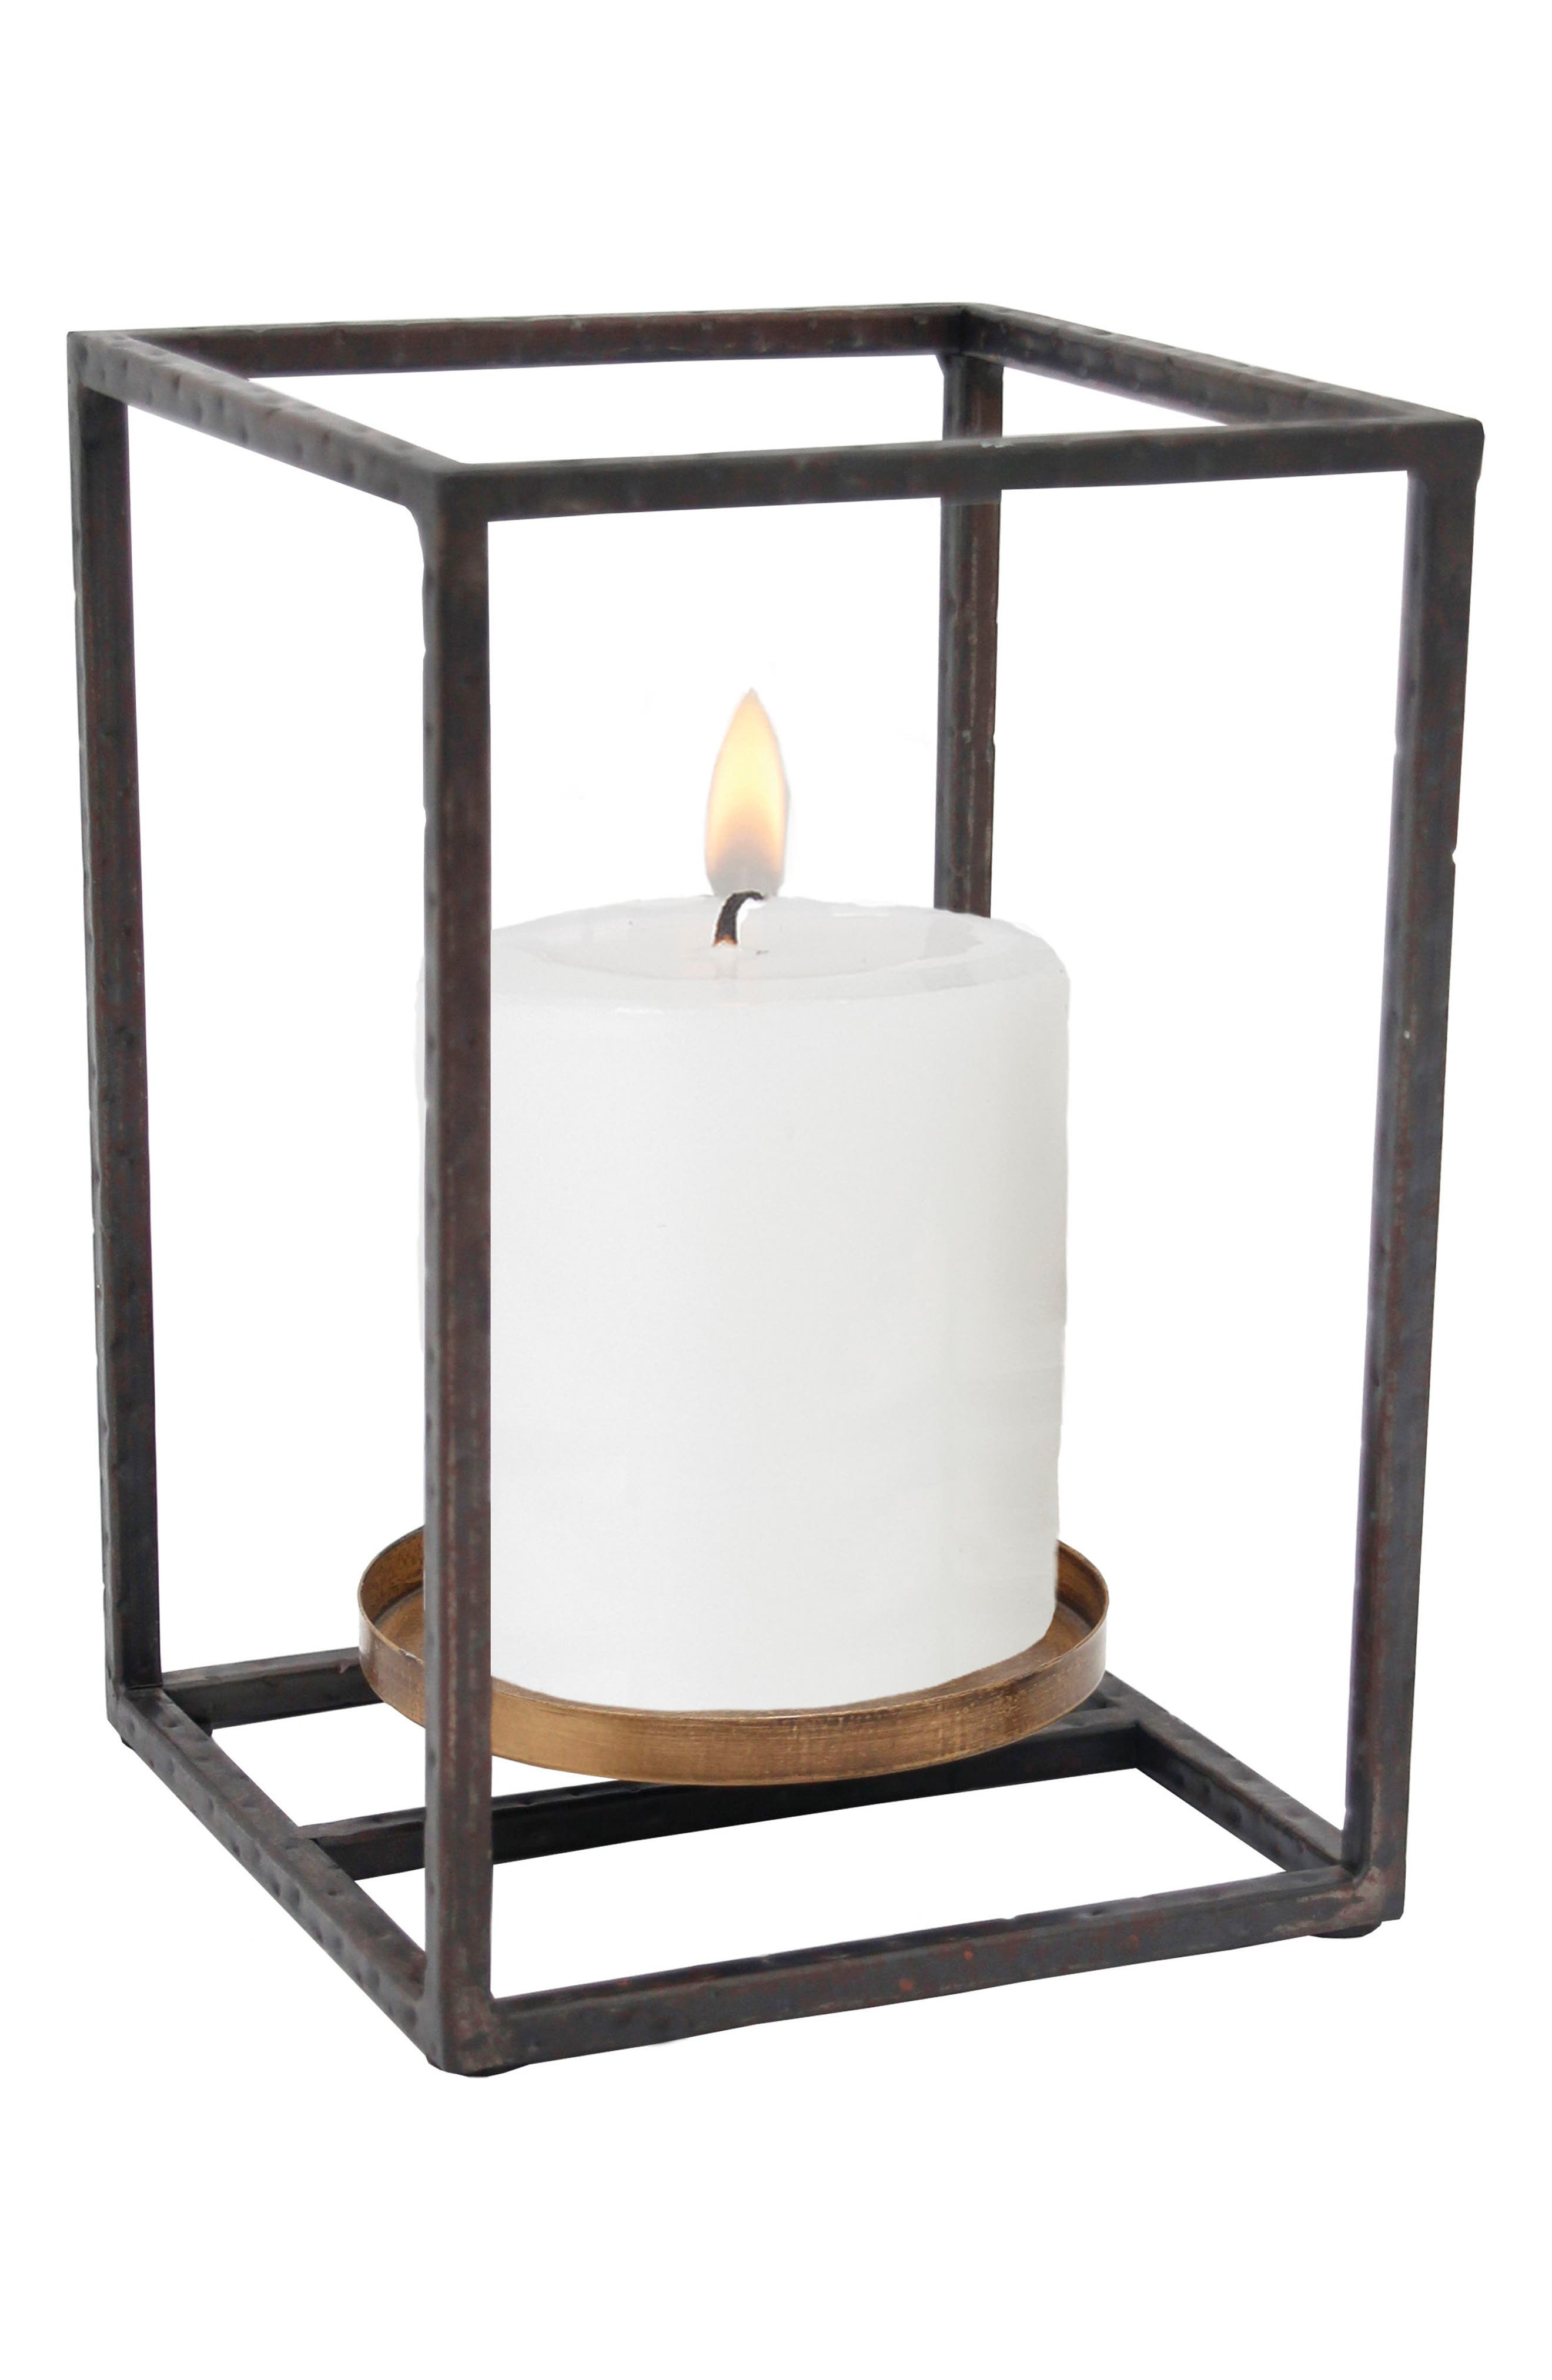 Main Image - Foreside Small Cube Pillar Candle Holder